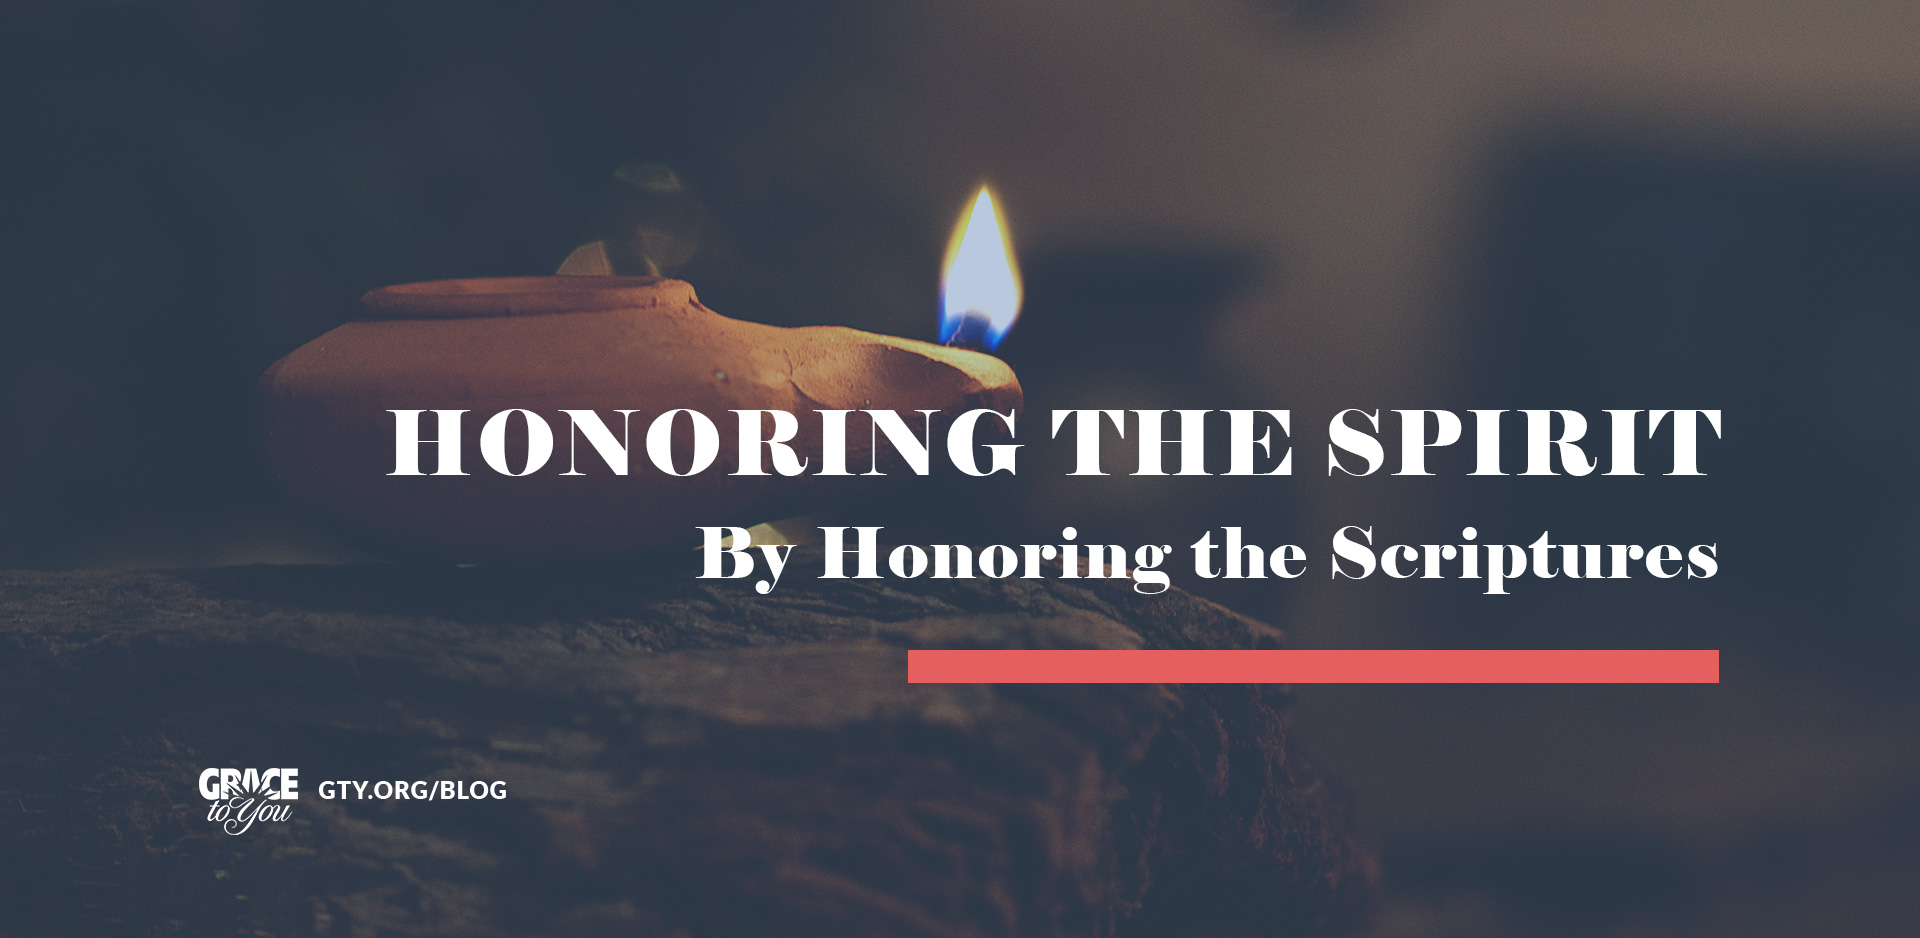 Honoring the Spirit by Honoring the Scriptures